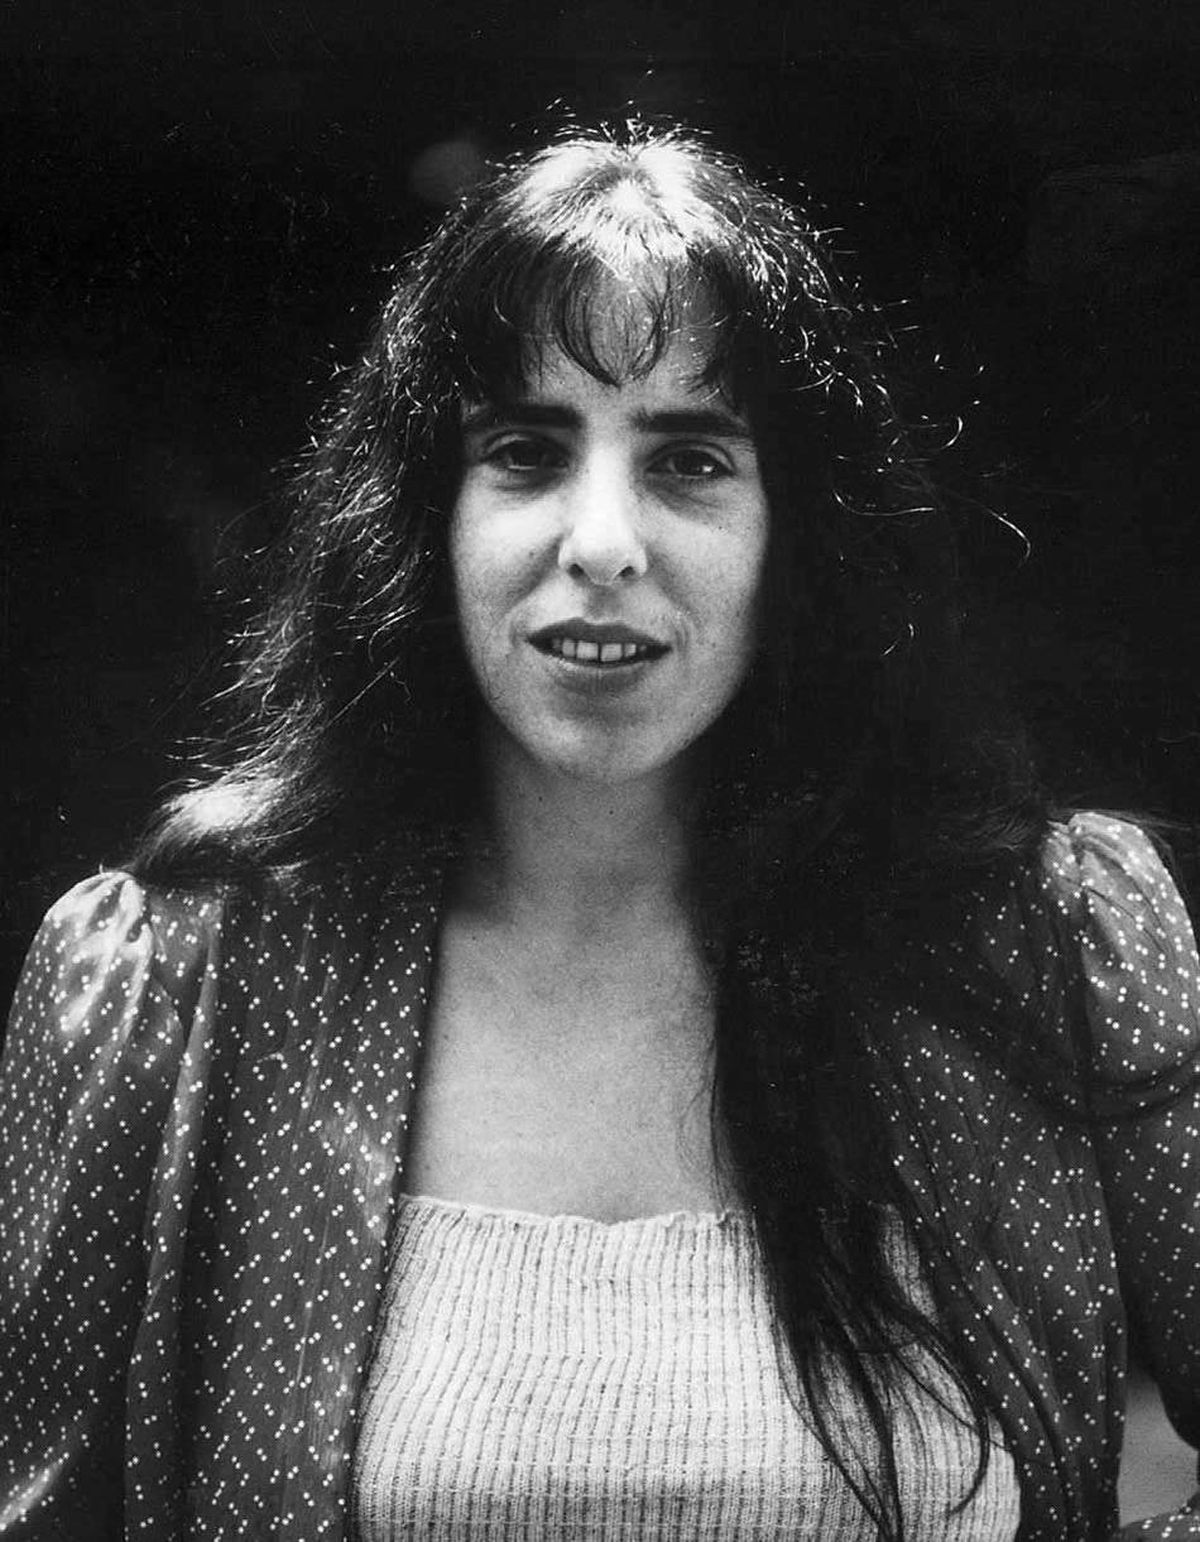 Laura Nyro in 1988: She wrote hit songs made famous by other performers but was also known as a singer in her own right. She died of ovarian cancer in 1997 at age 49.